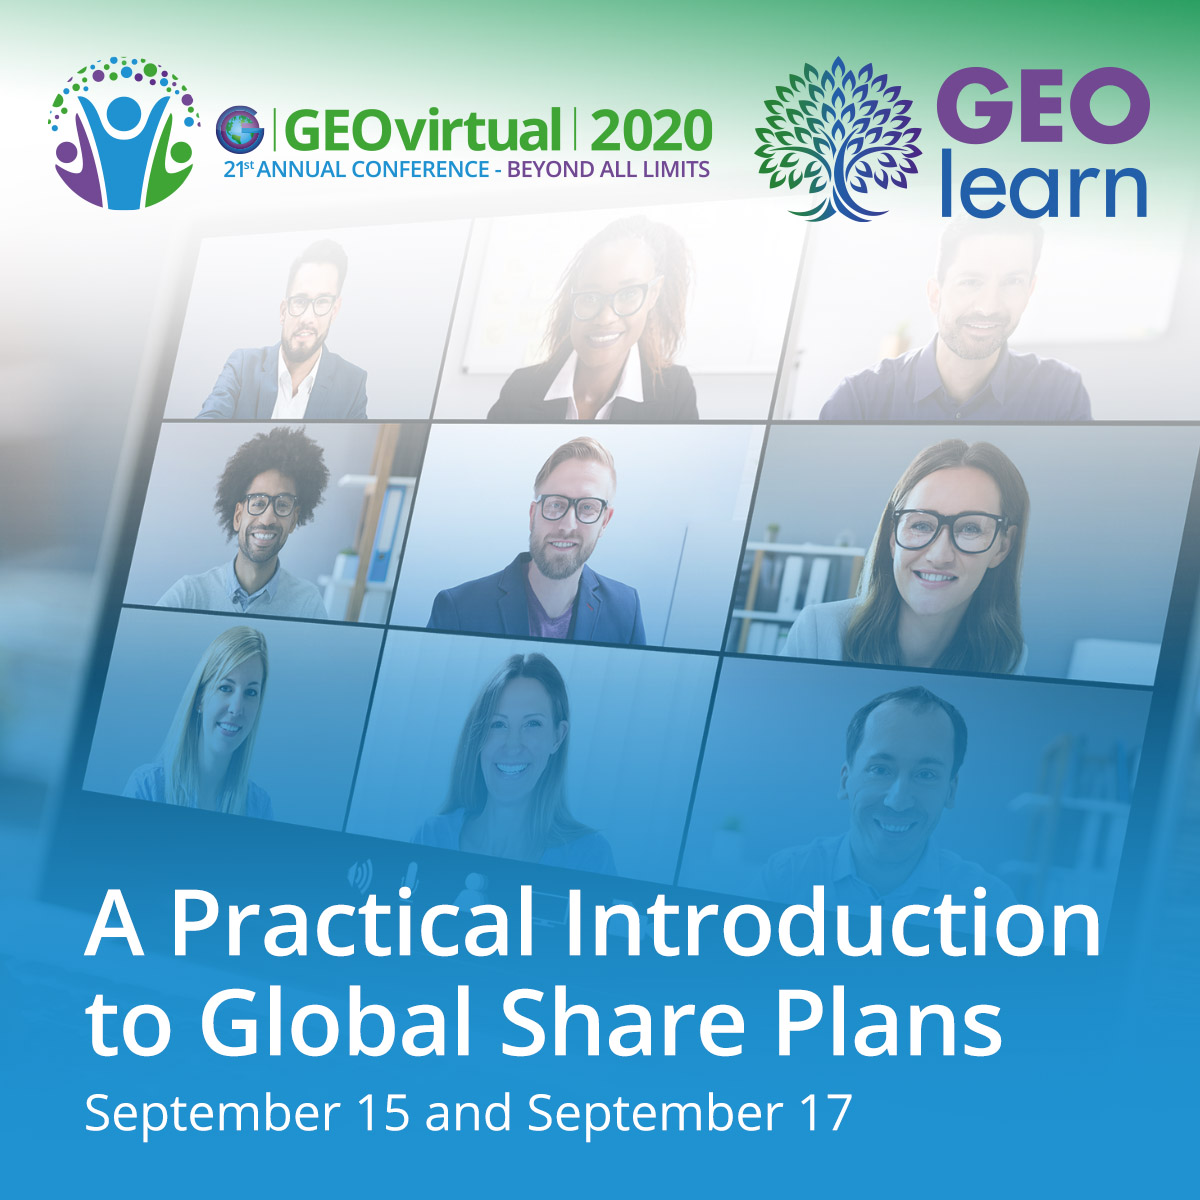 GEO's 21st Annual Conference Bootcamp